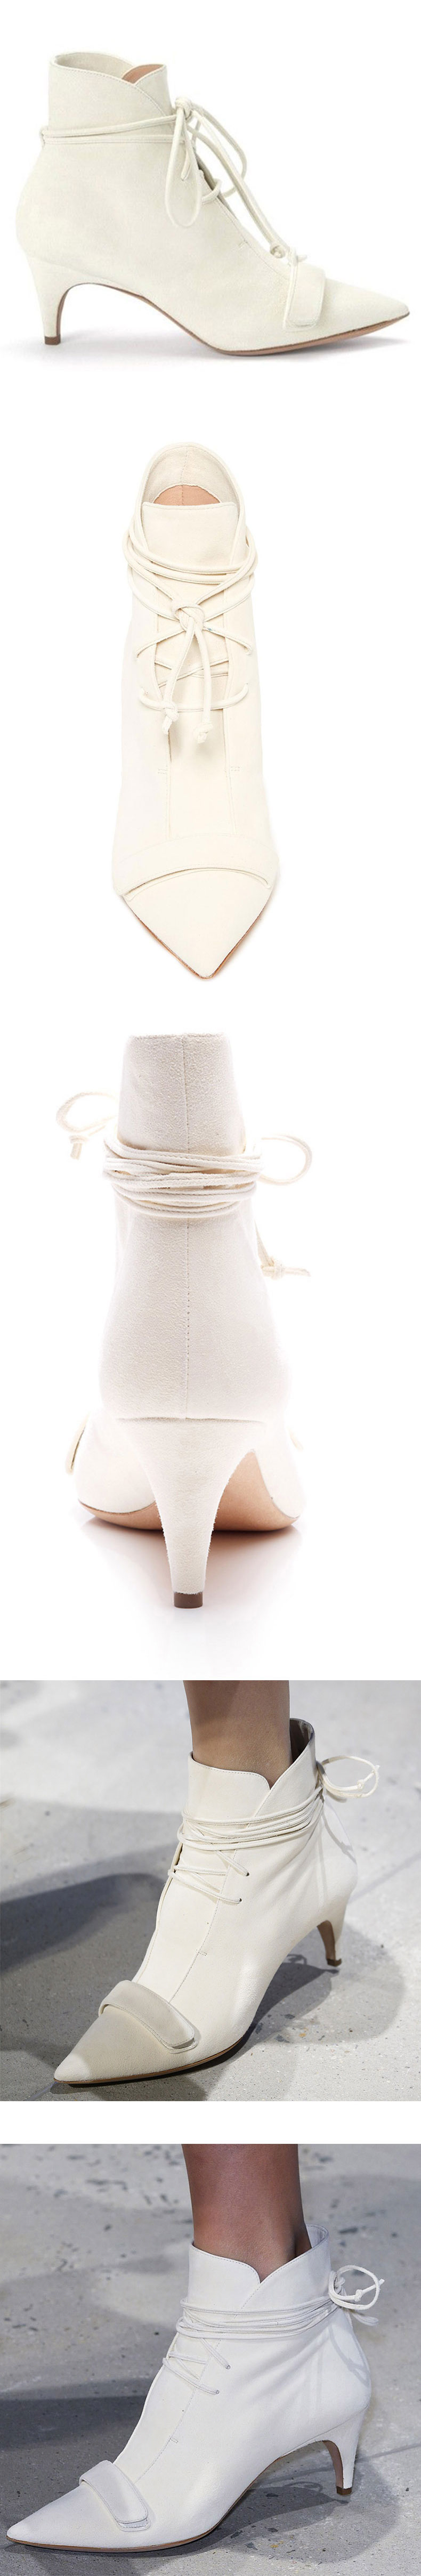 9327a3b65f1f6 Beige Fashion Boots Kitten Heel Pointy Toe Strappy Ankle Booties for ...